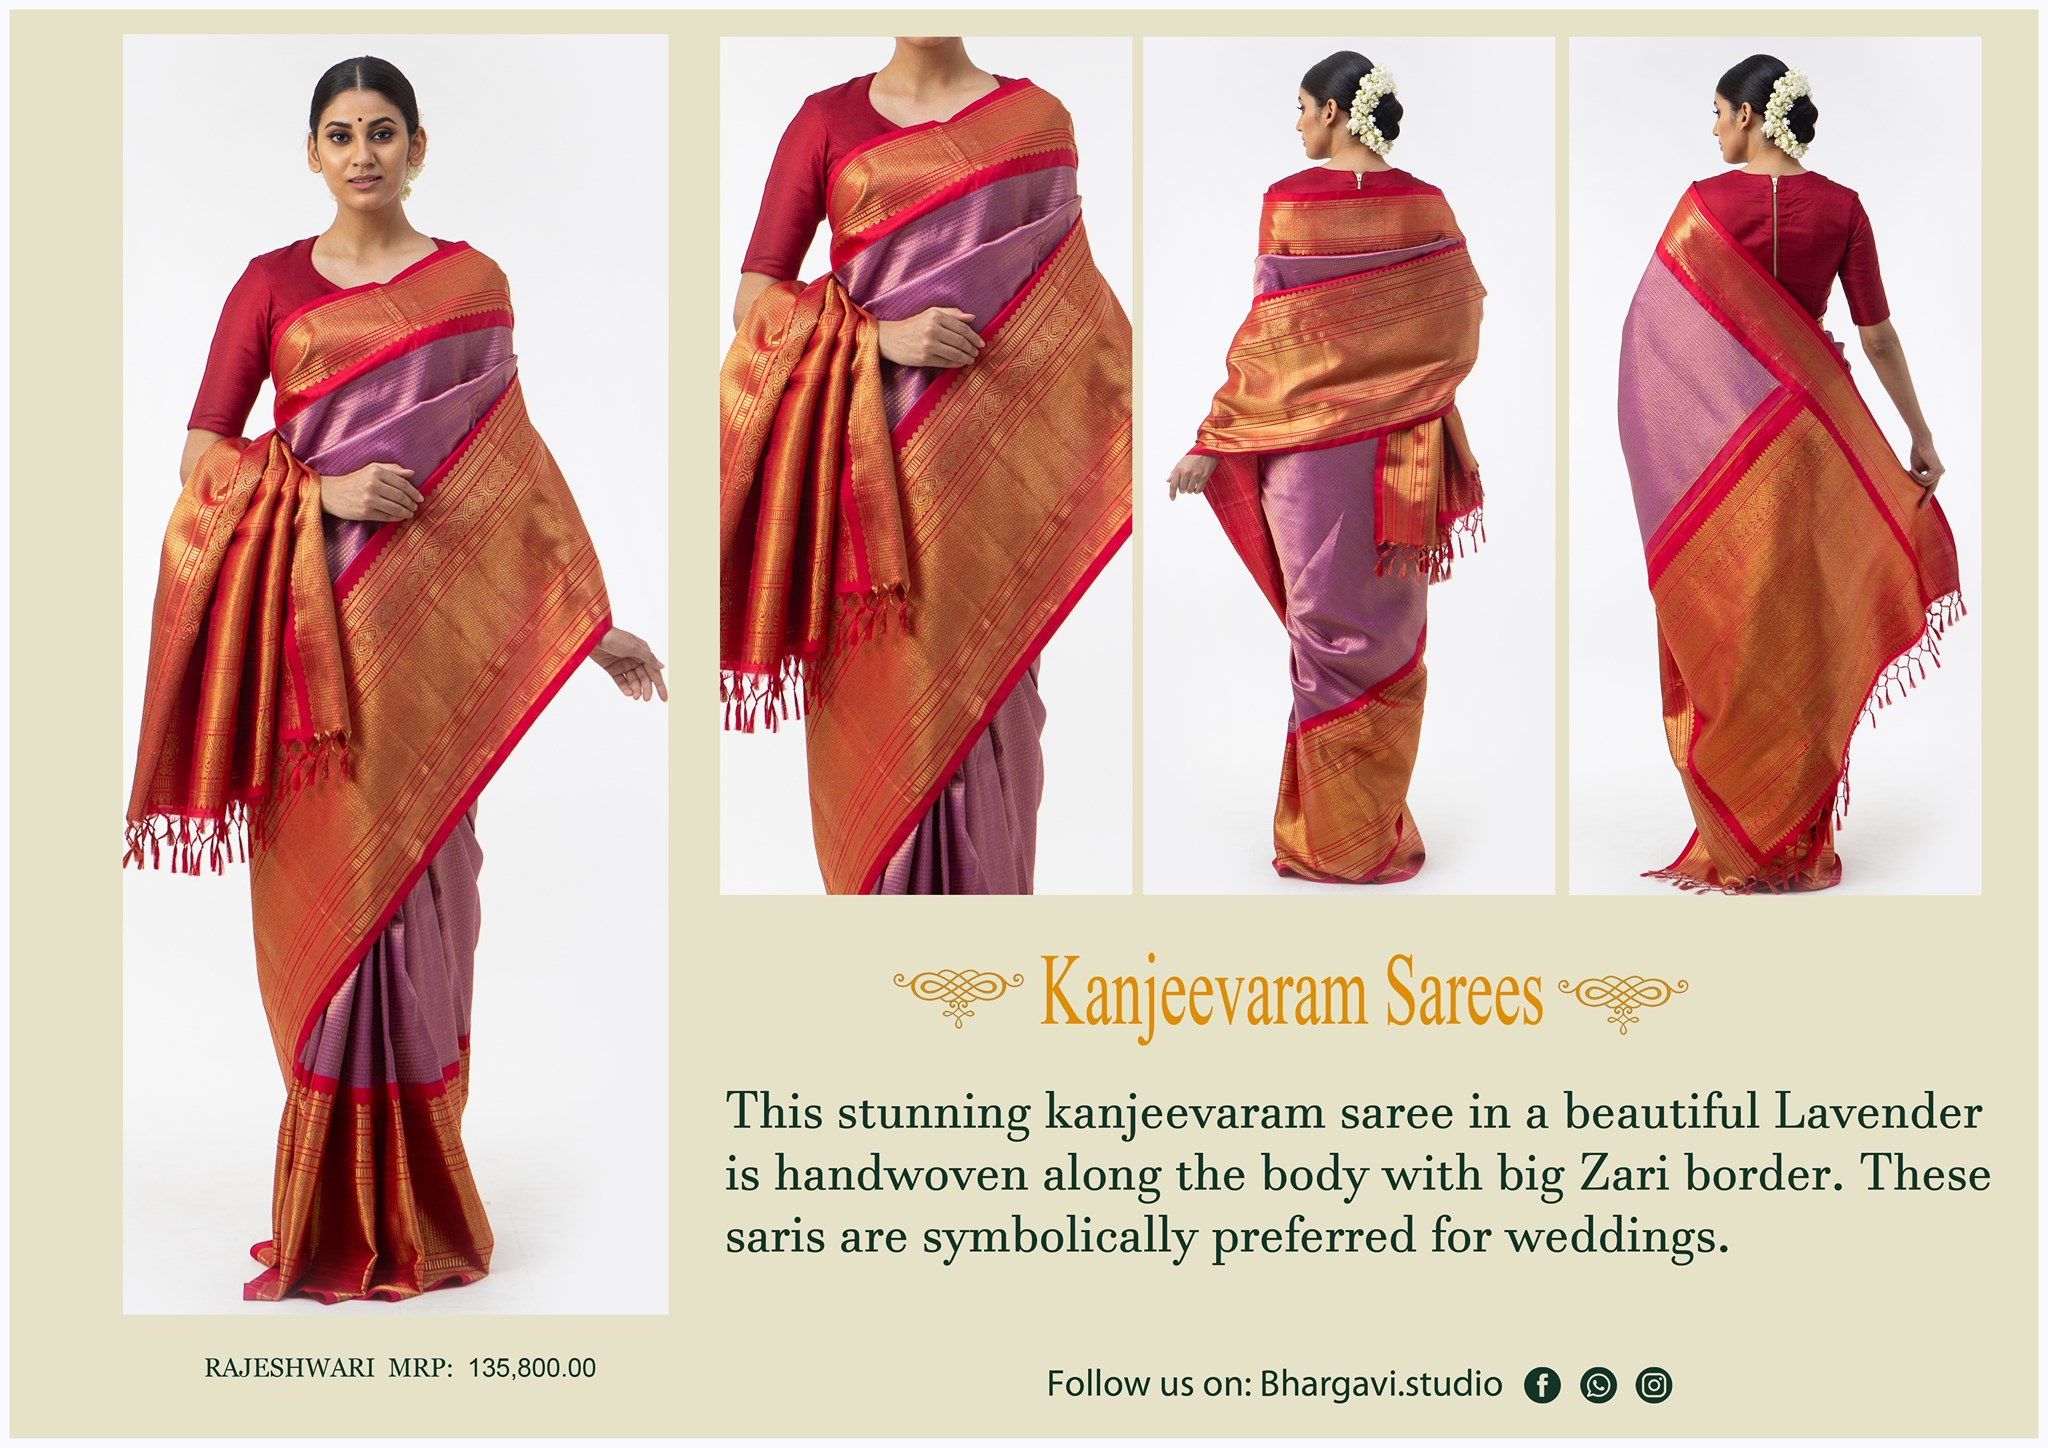 This stunning kanjeevaram saree in a beautiful lavender is handwoven along the body with big zari boarder. 2021-05-09